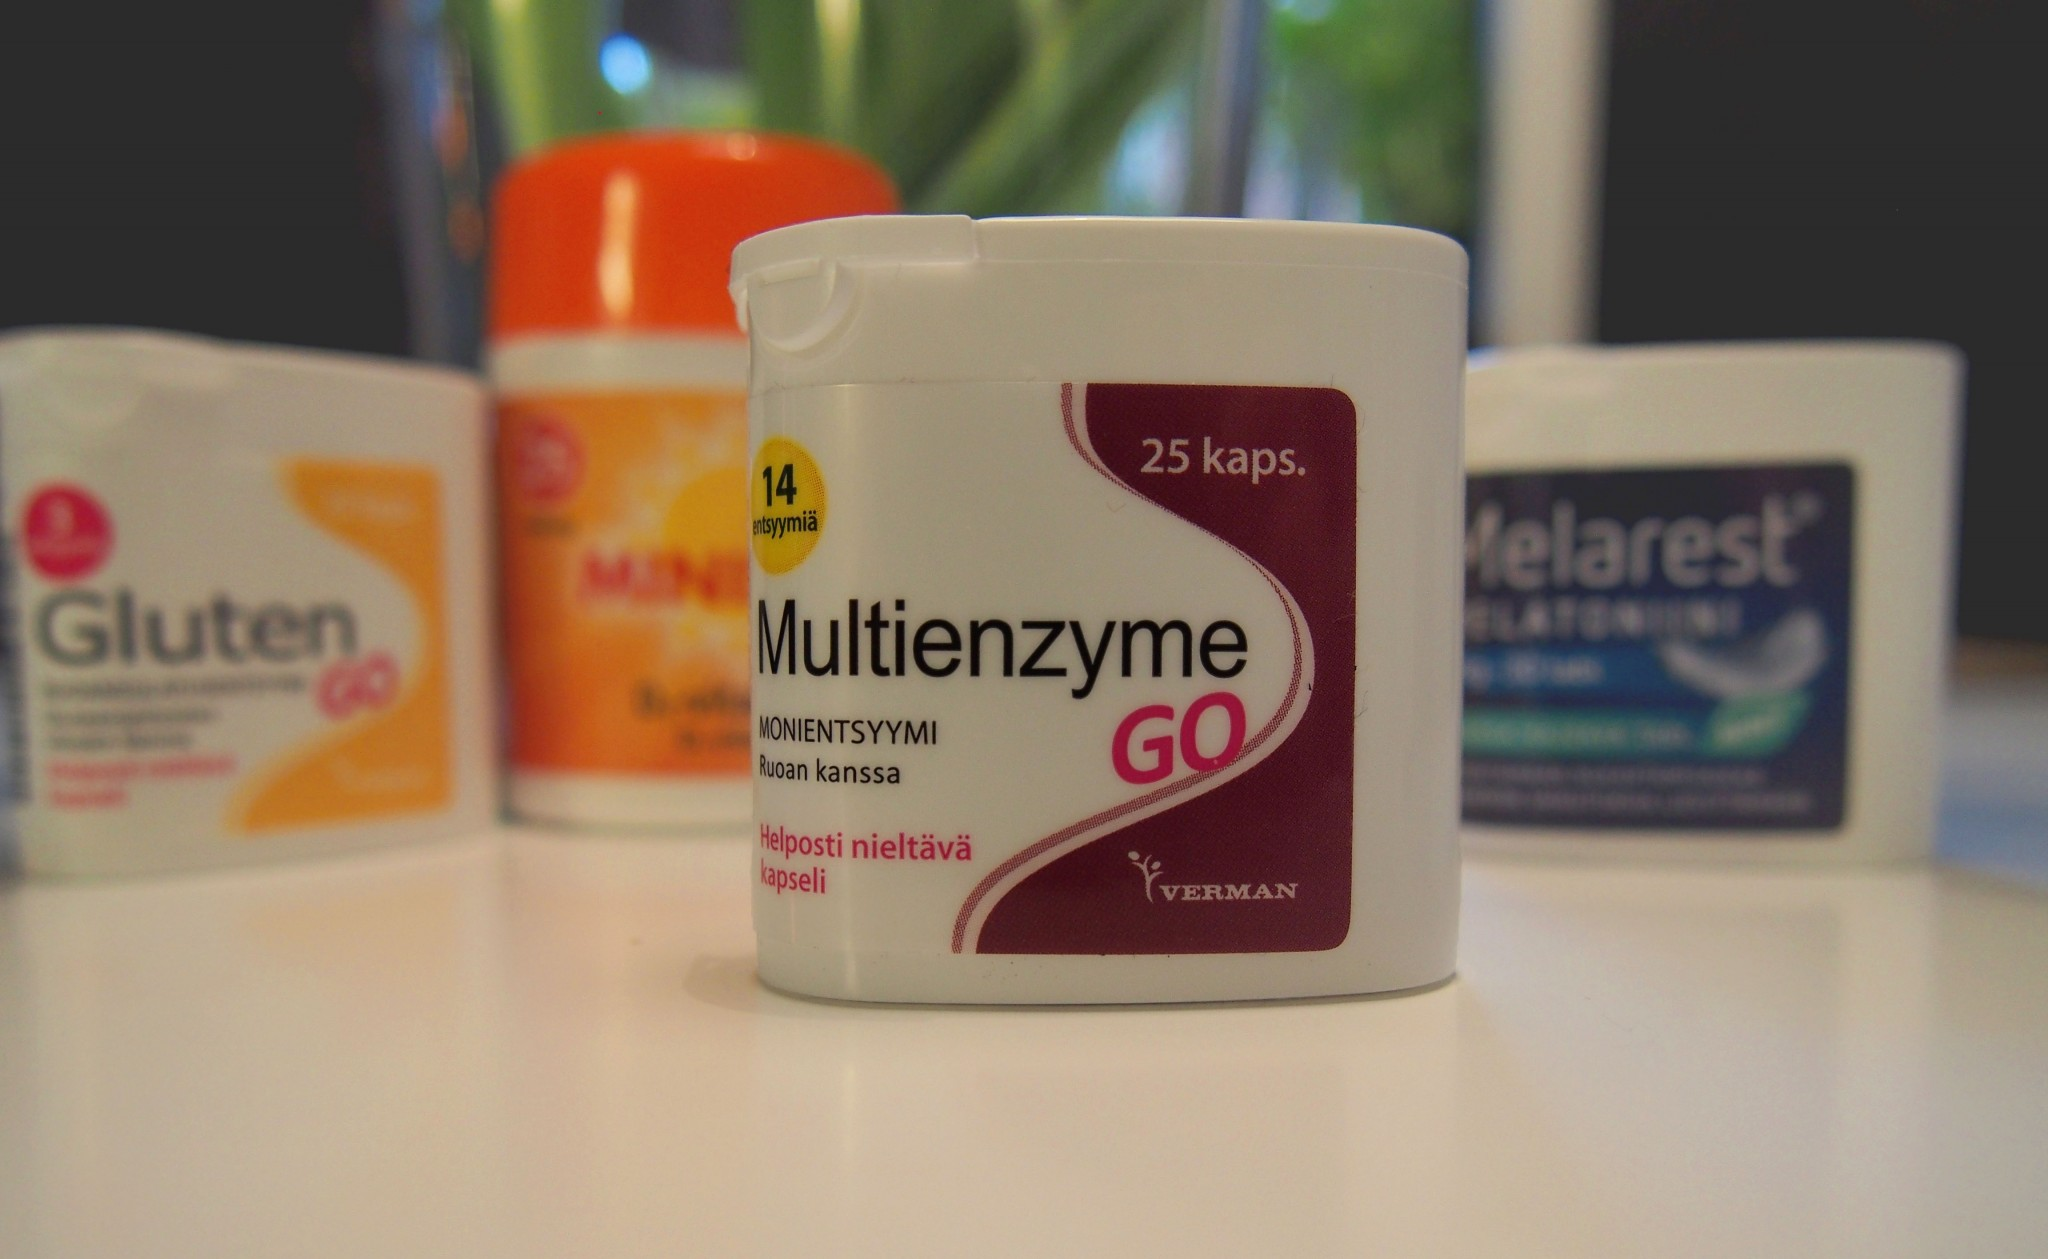 Multienzyme Go